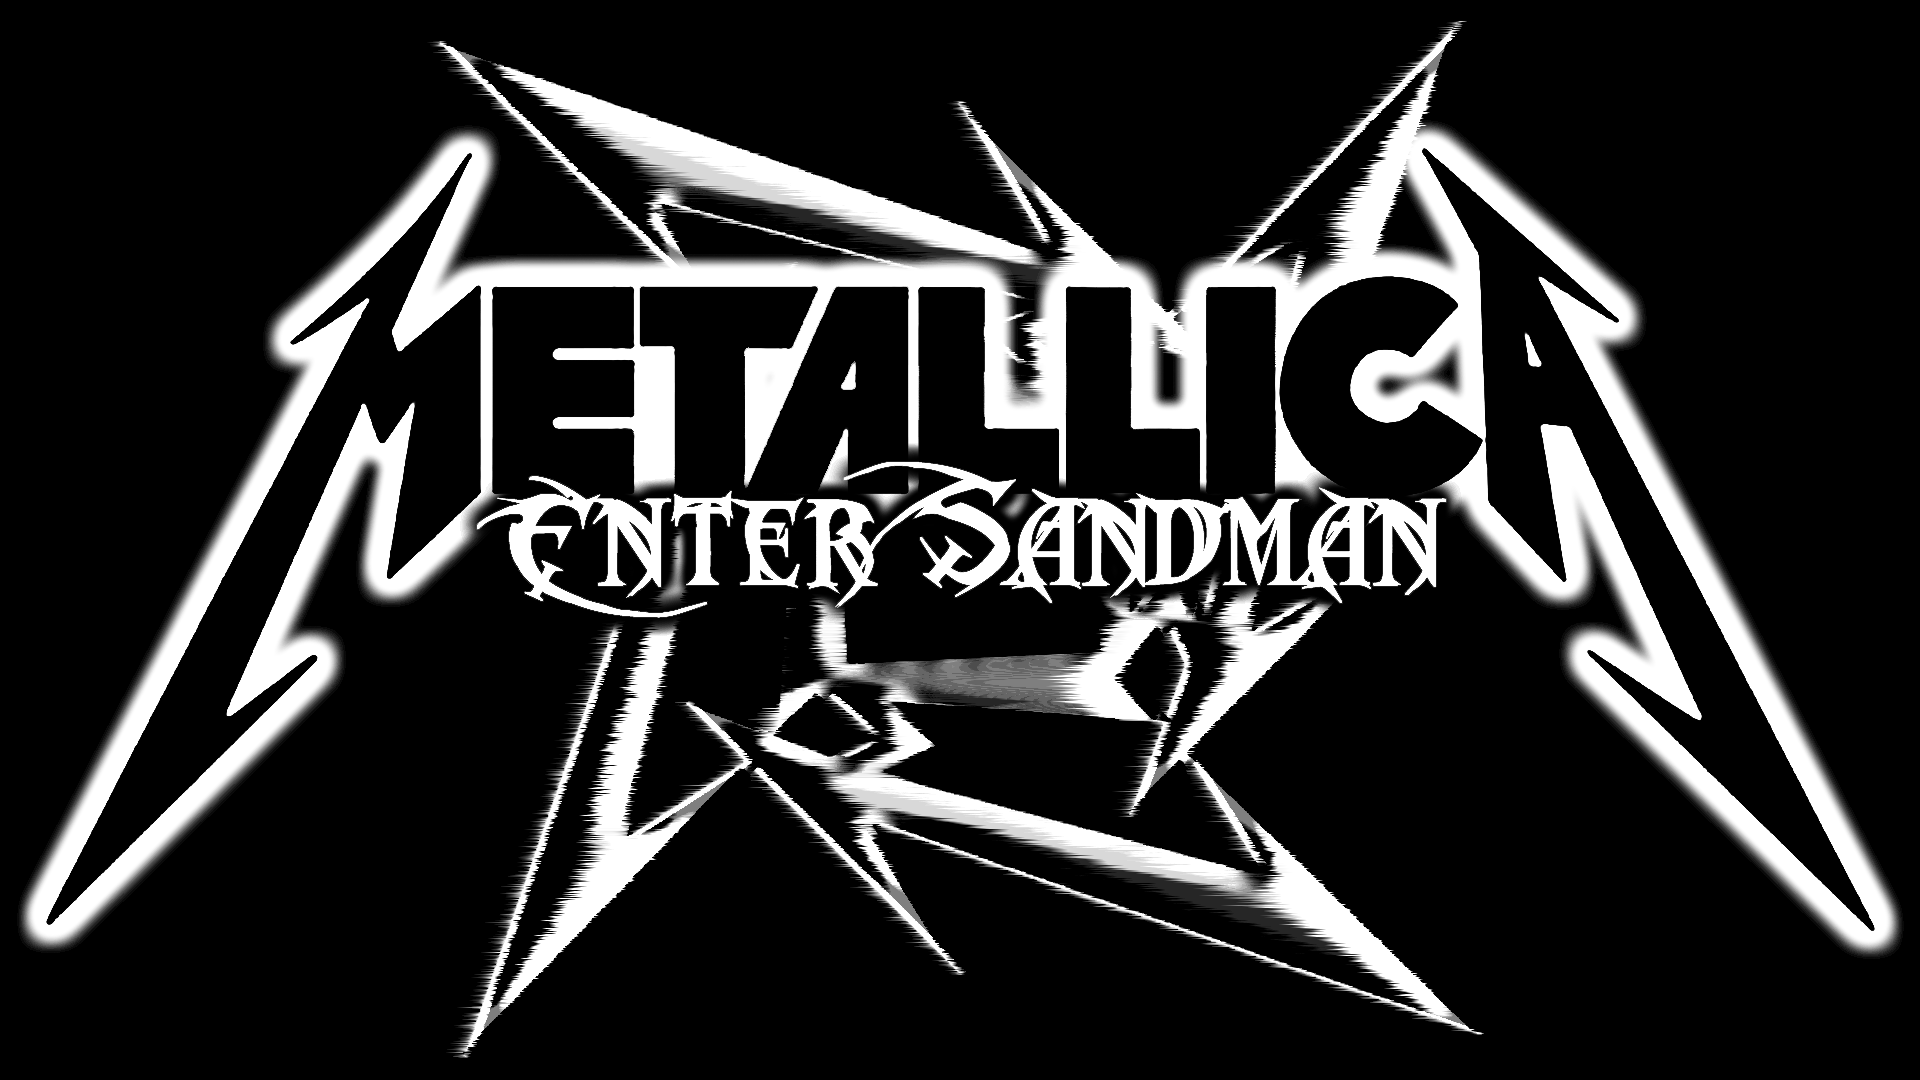 metallica enter sandman v2 0 by zerolevels on deviantart metallica logo svg metallica logo draw